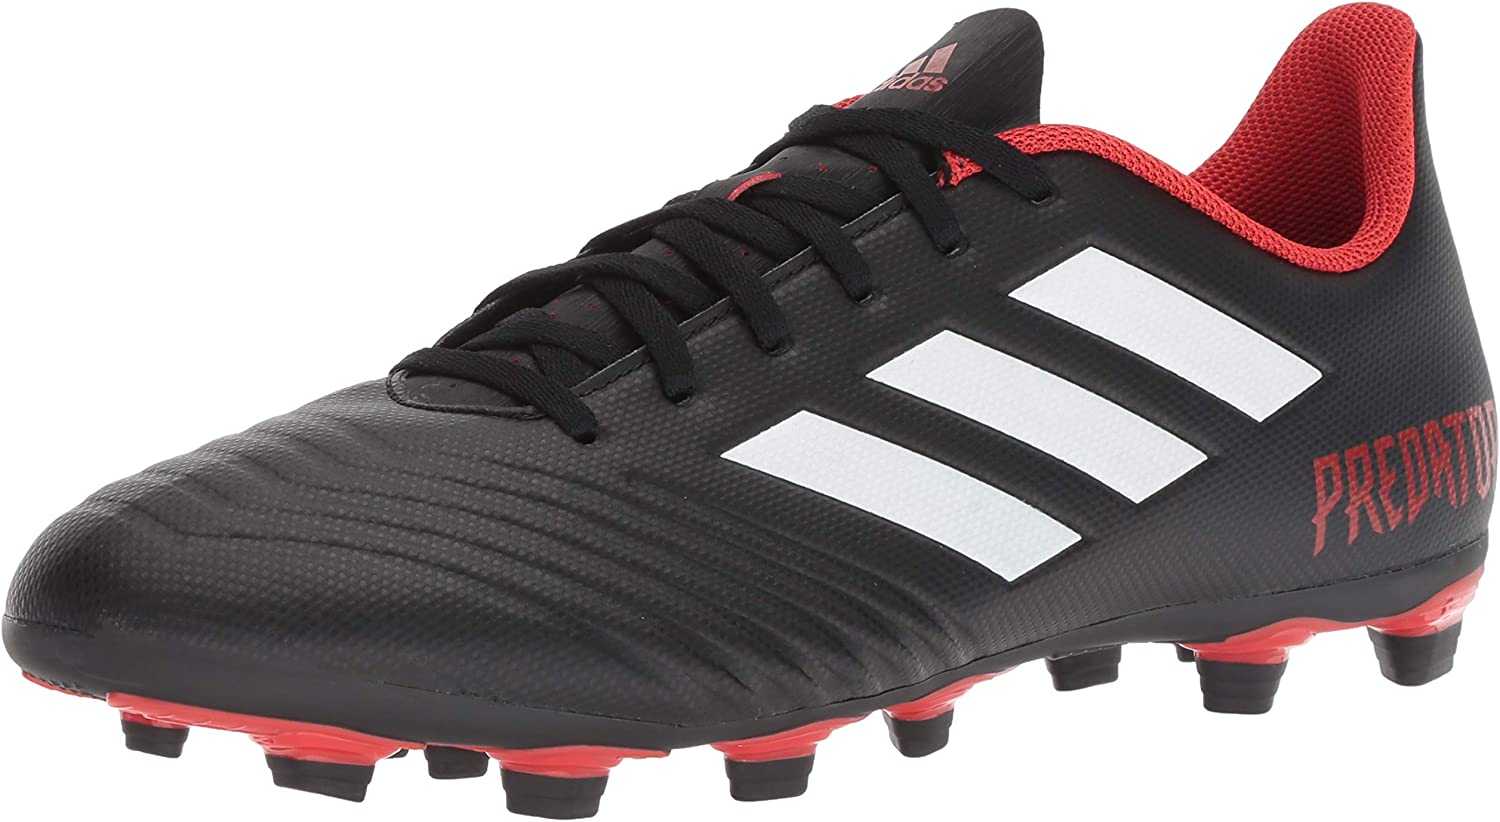 adidas Men's Predator 18.4 Firm Ground Soccer Shoe, Black/White/Red, 9 M US